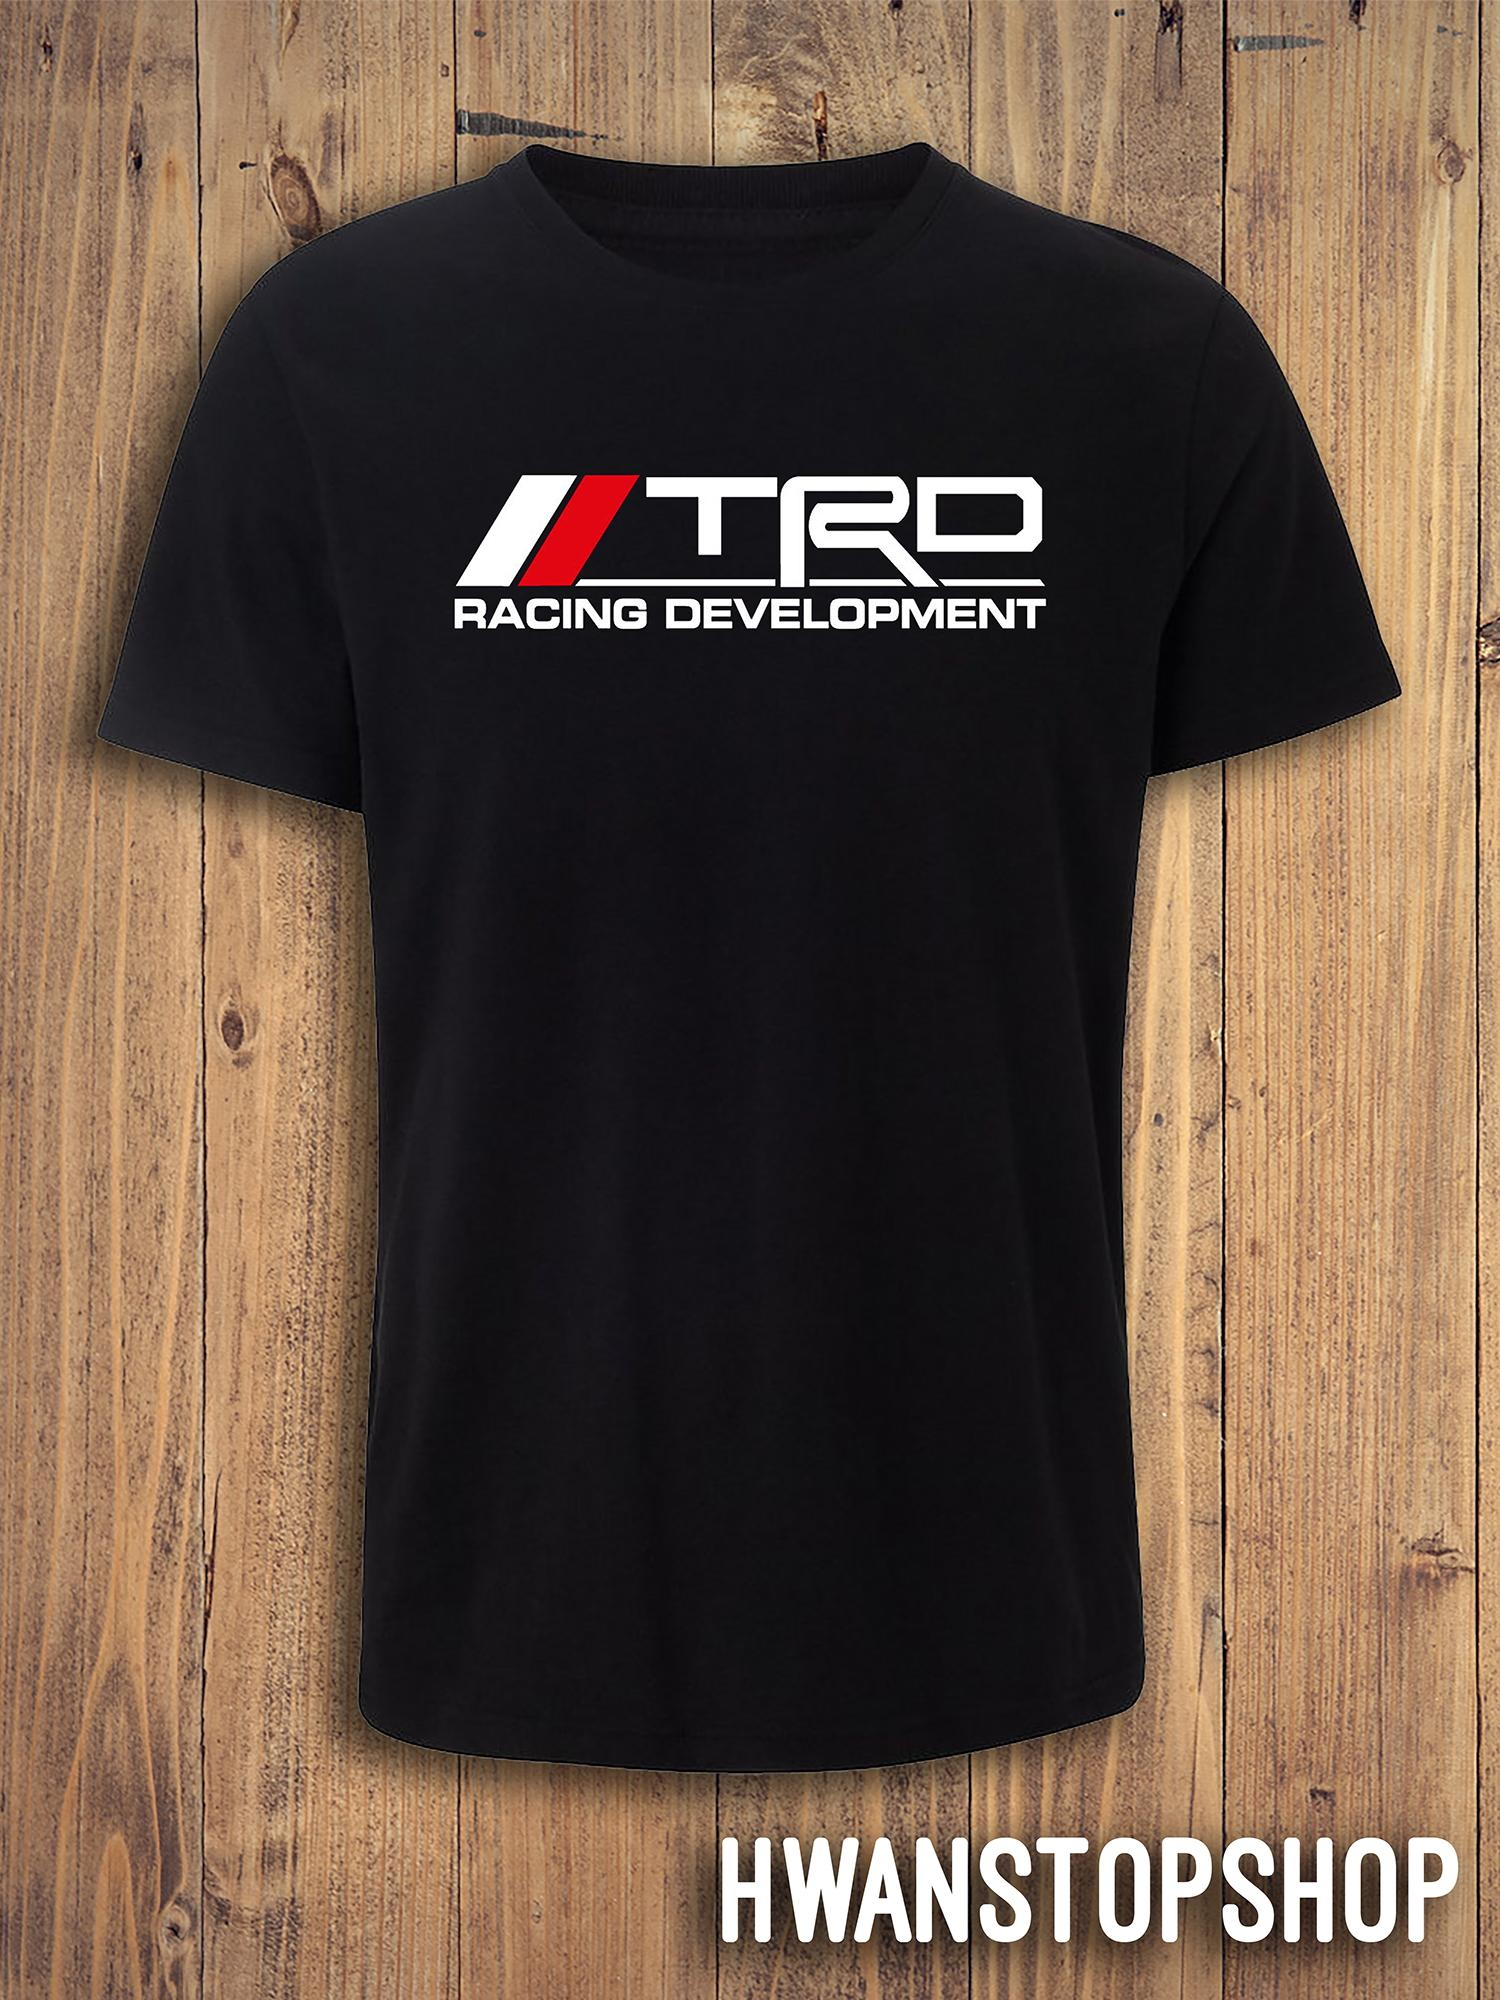 Kids T-Shirt Tops Black Racing Development TRD Unisex Youths Short Sleeve T-Shirt